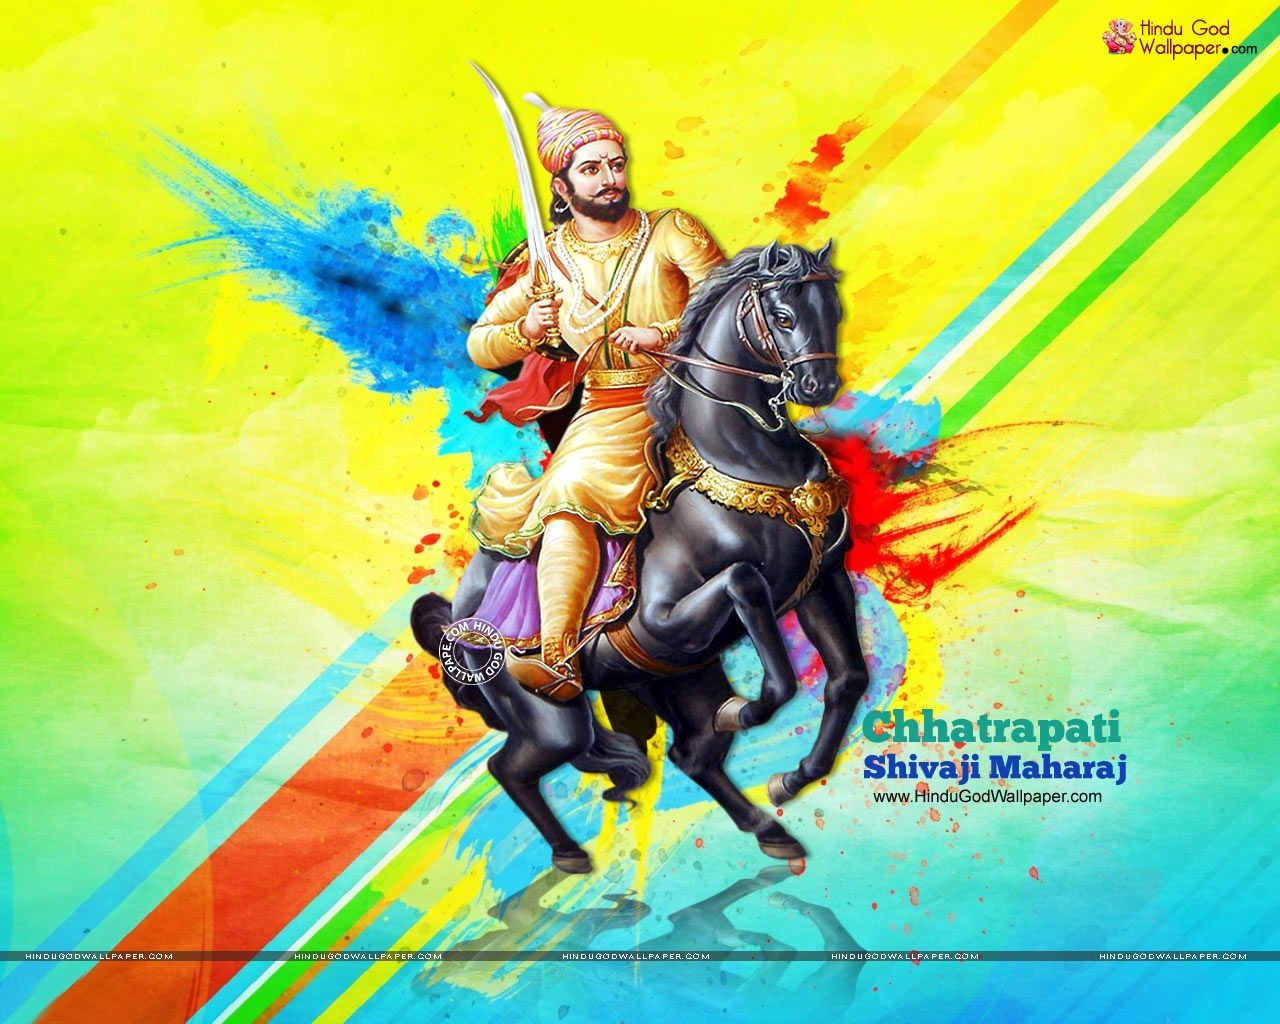 chhatrapati shivaji maharaj wallpaper free download | shiva ji